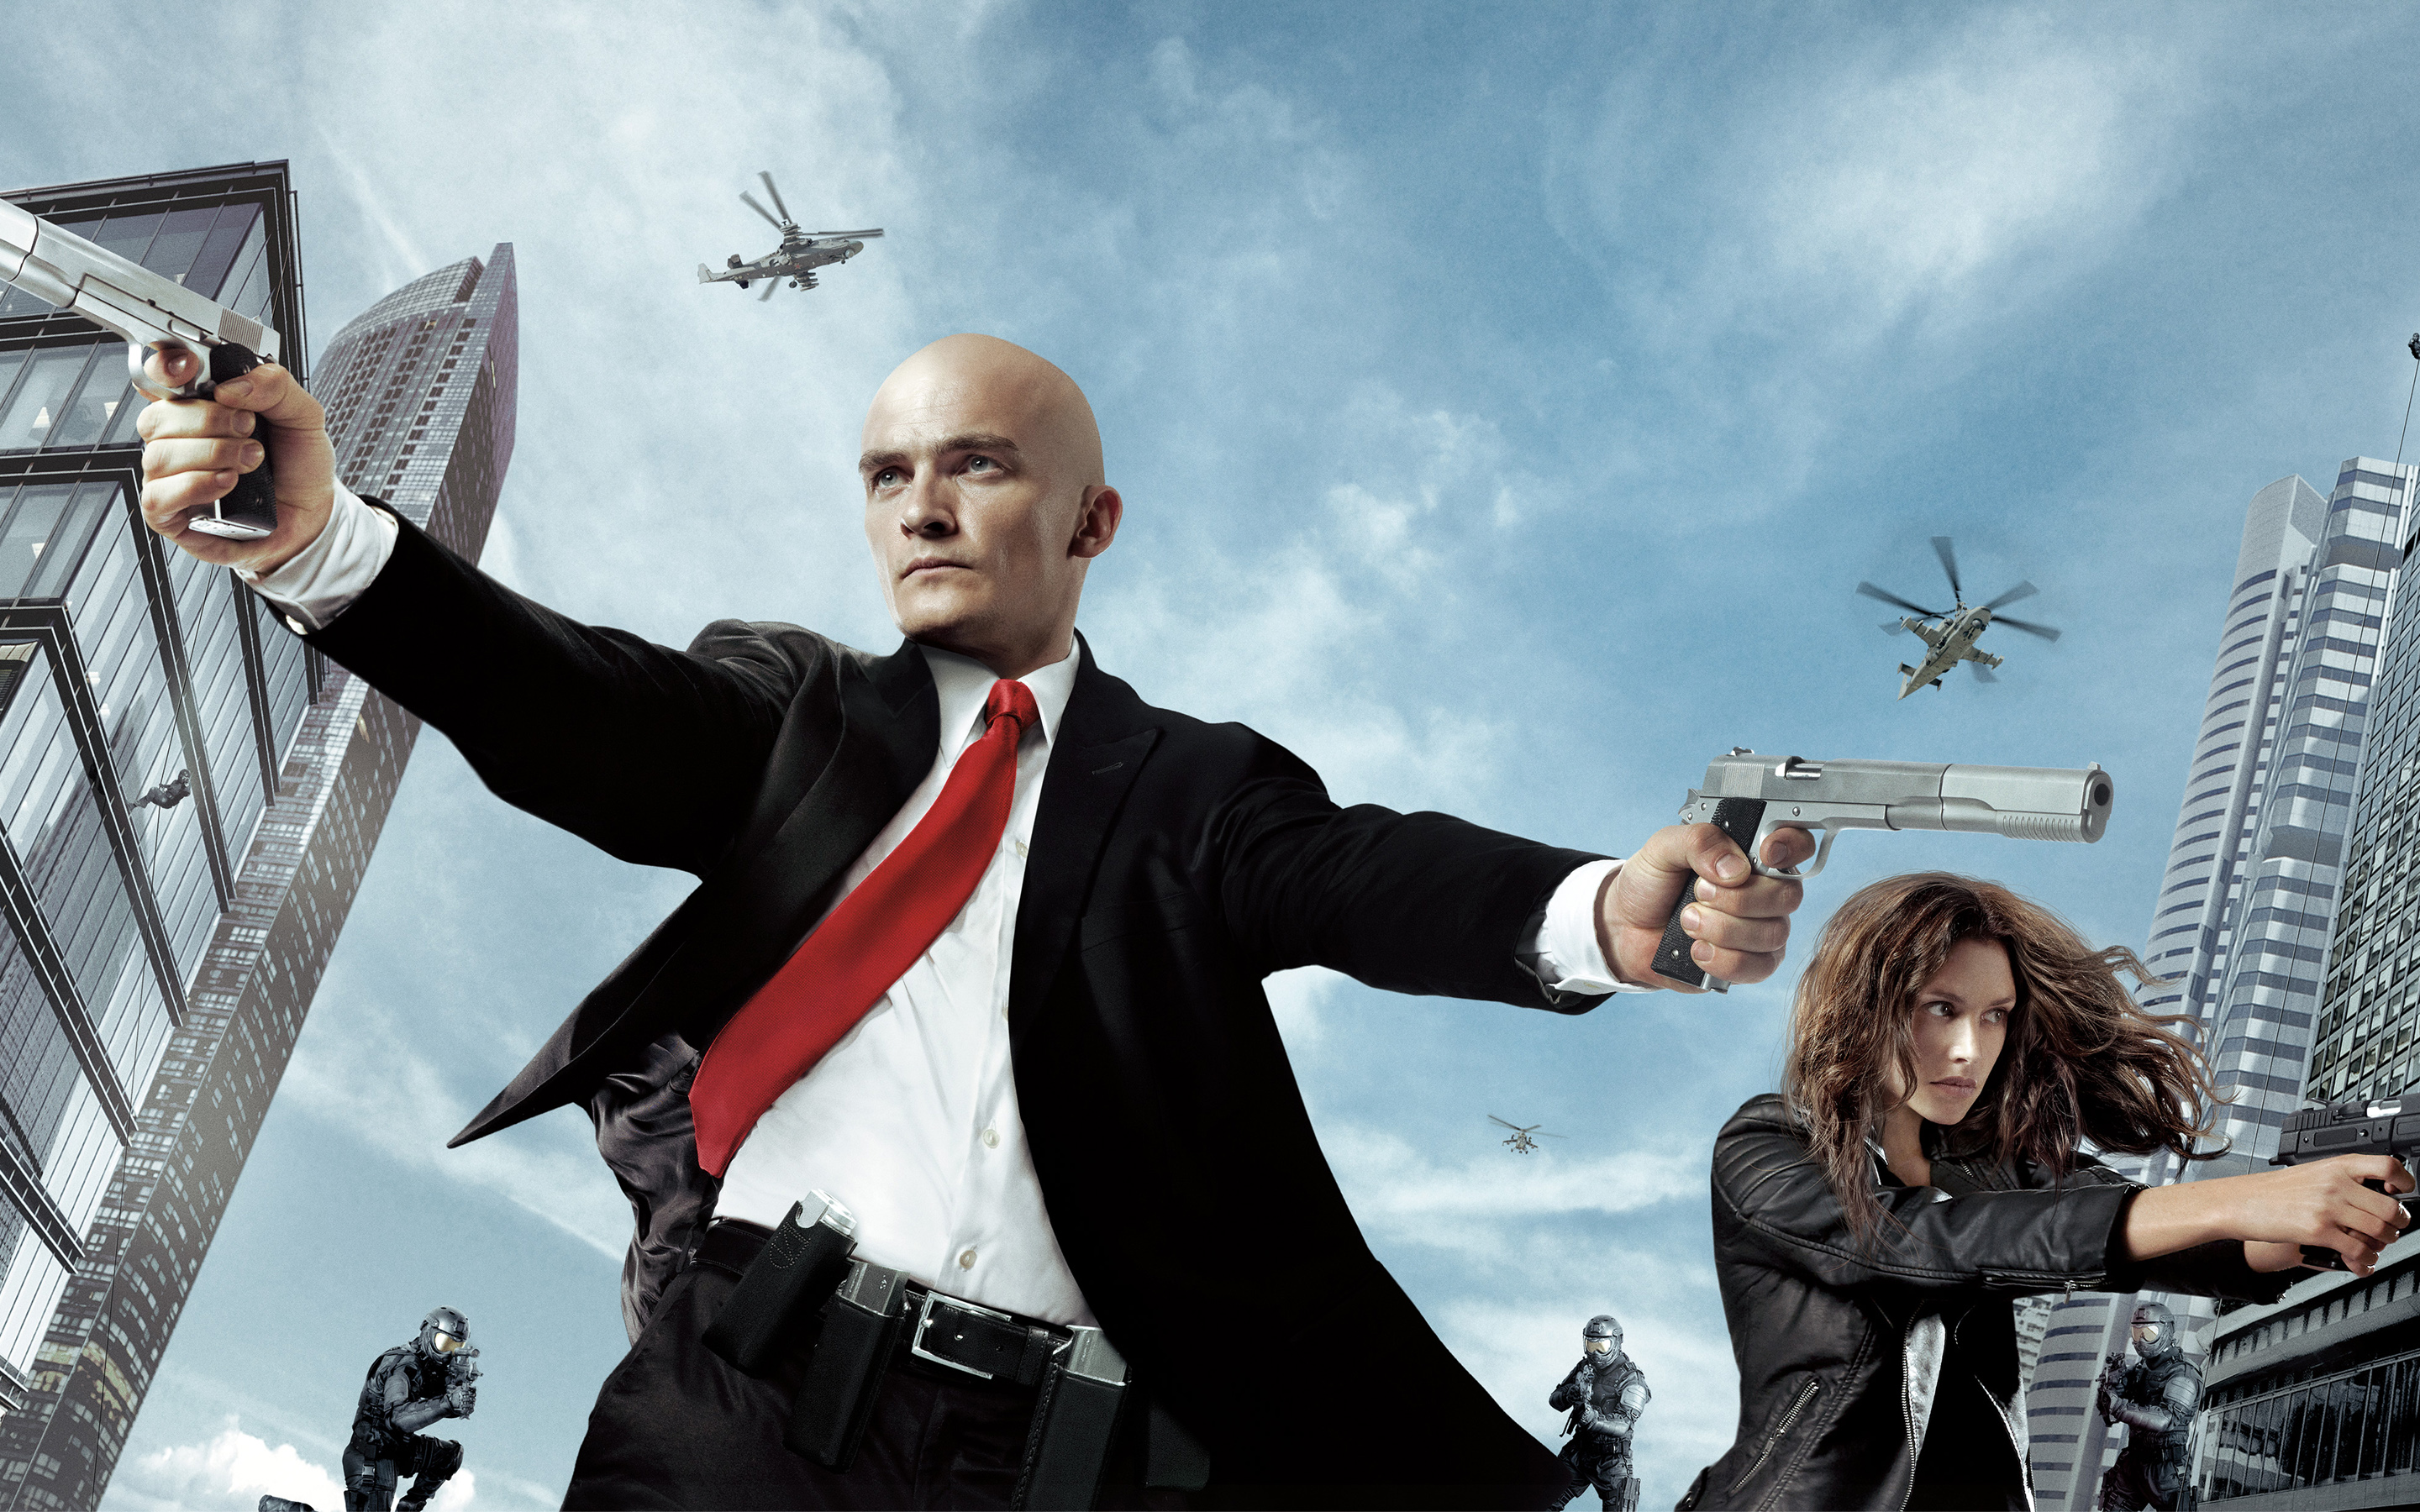 Hitman wallpapers photos and desktop backgrounds up to 8k 7680x4320 resolution - Agent 47 wallpaper ...